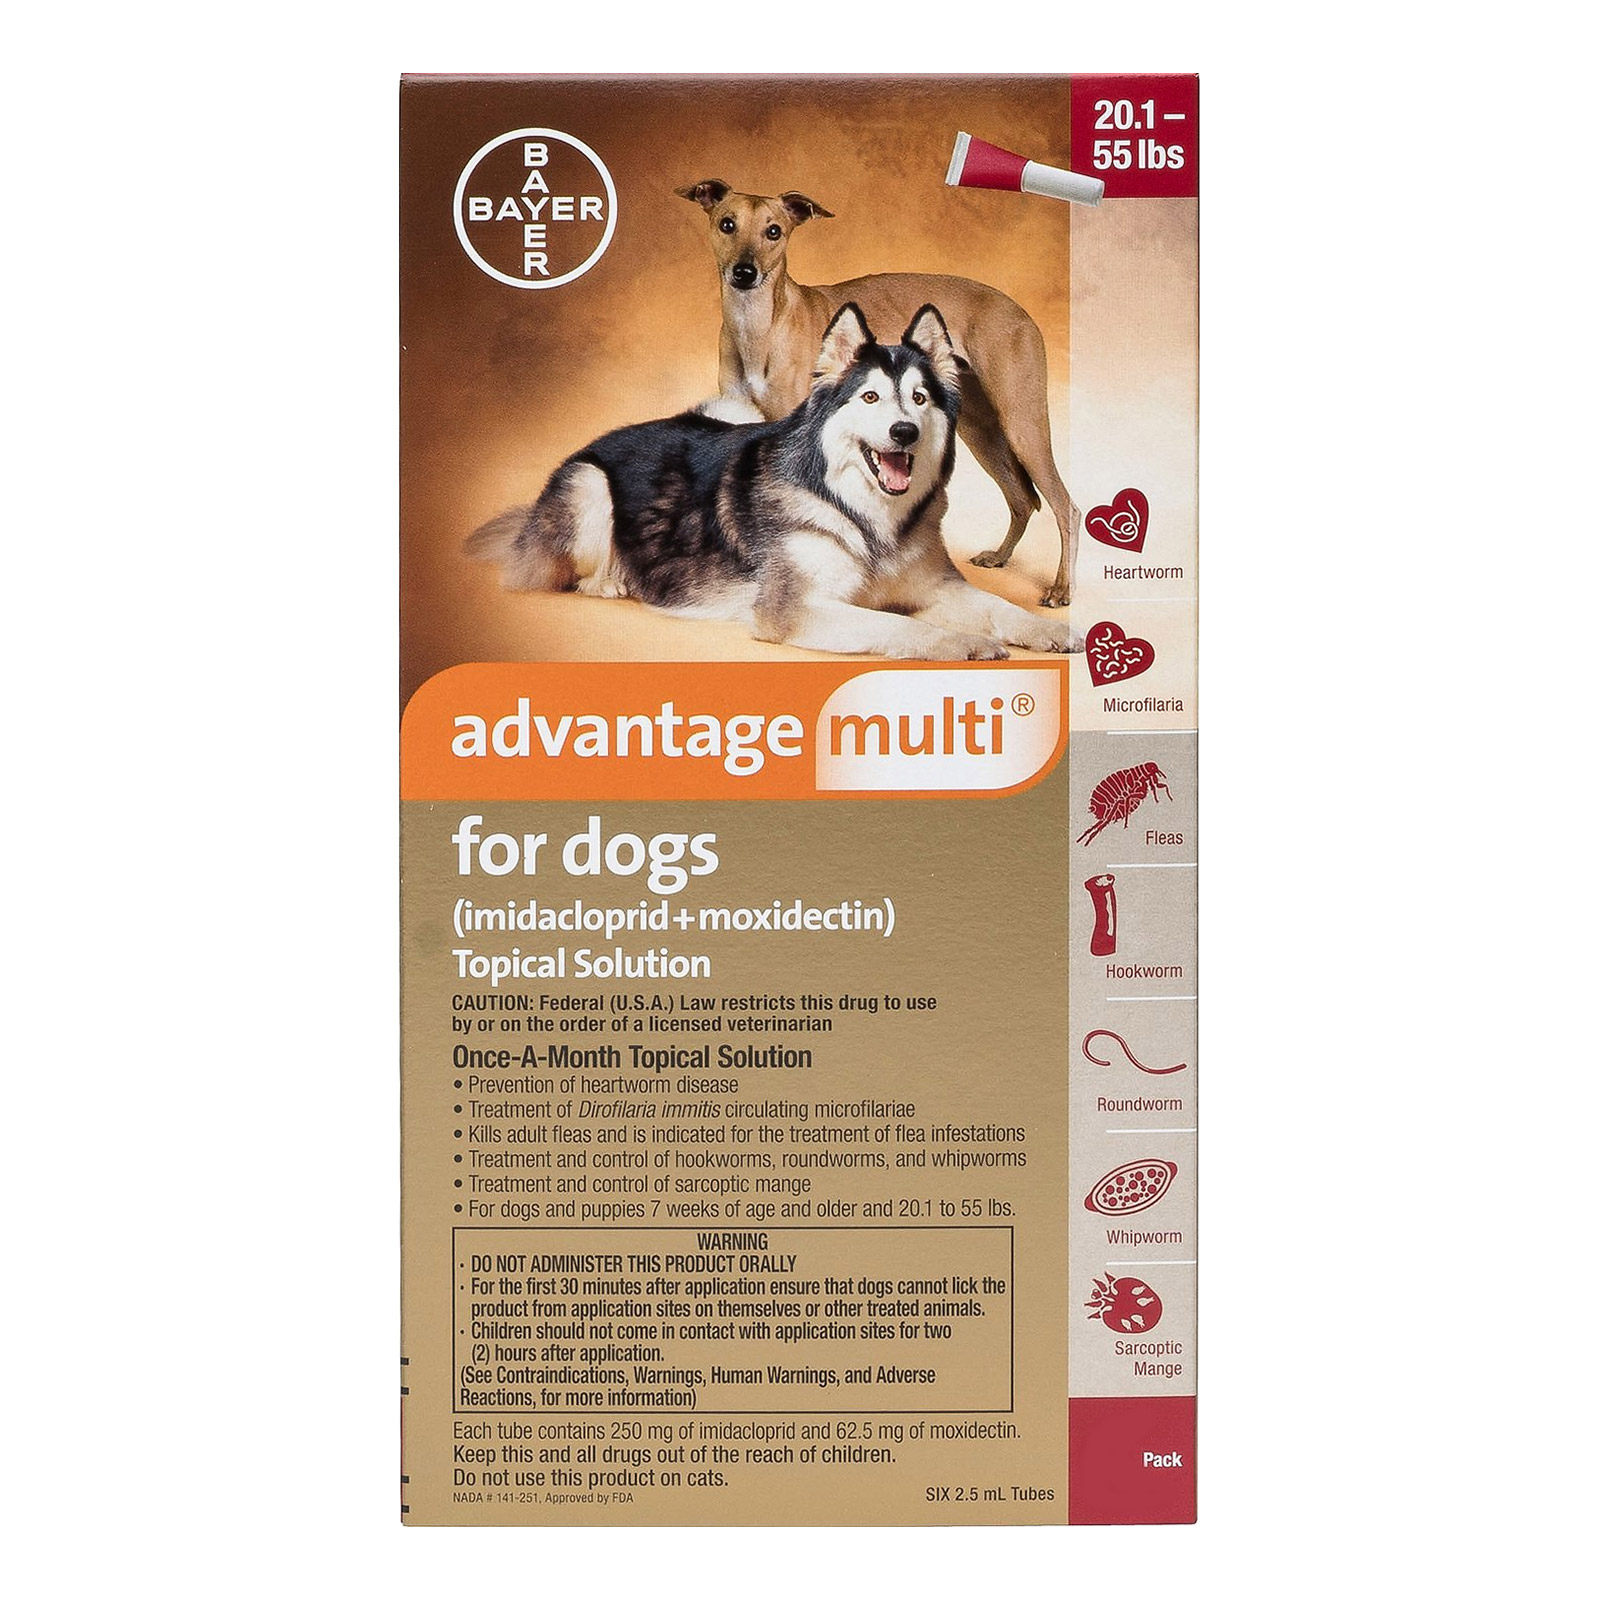 Advantage_Multi_Advocate_Large_Dogs_20155_Lbs_Red_3_Doses